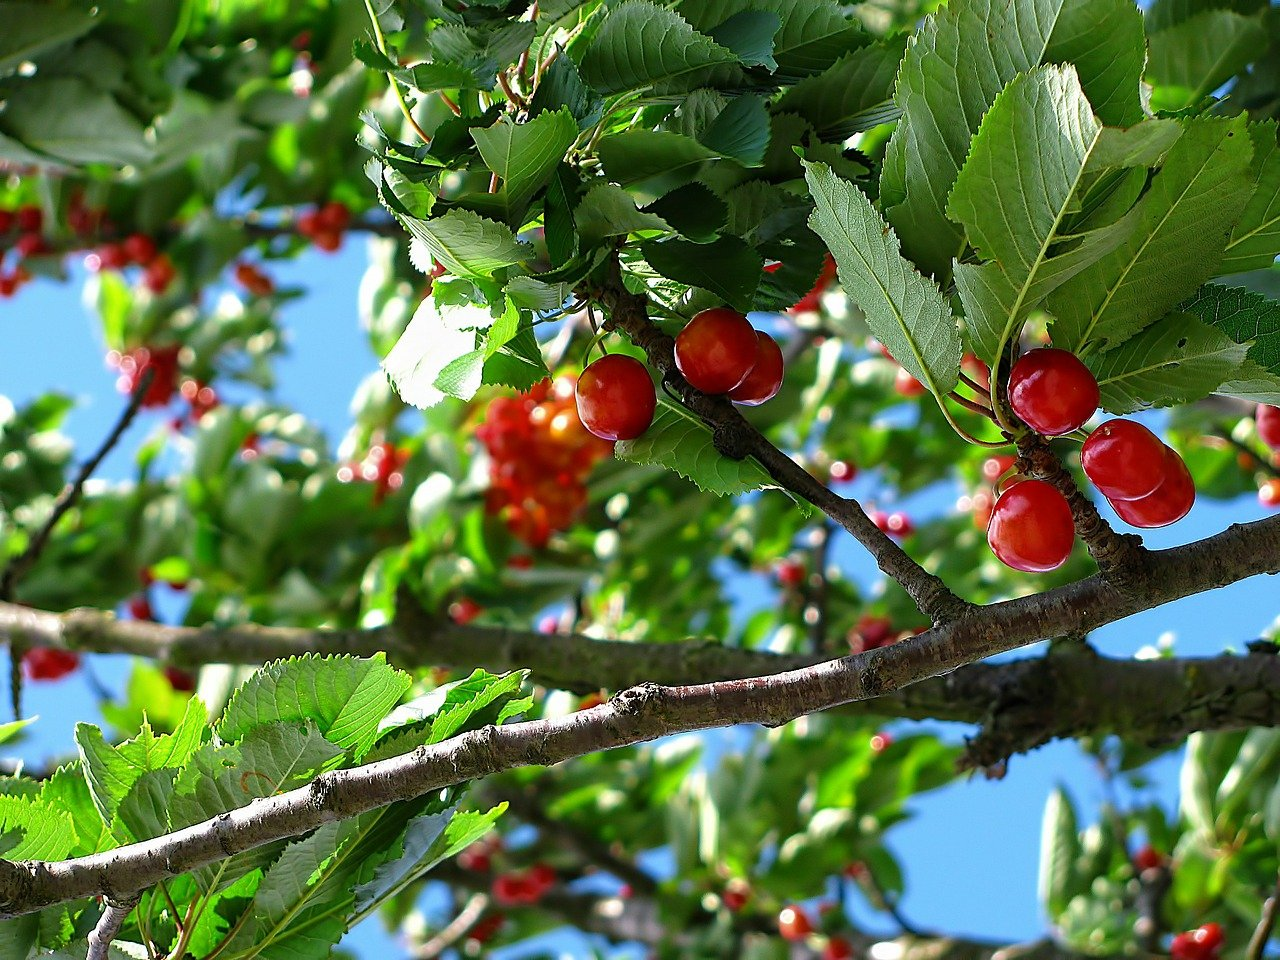 Branch of tree with cherries growing